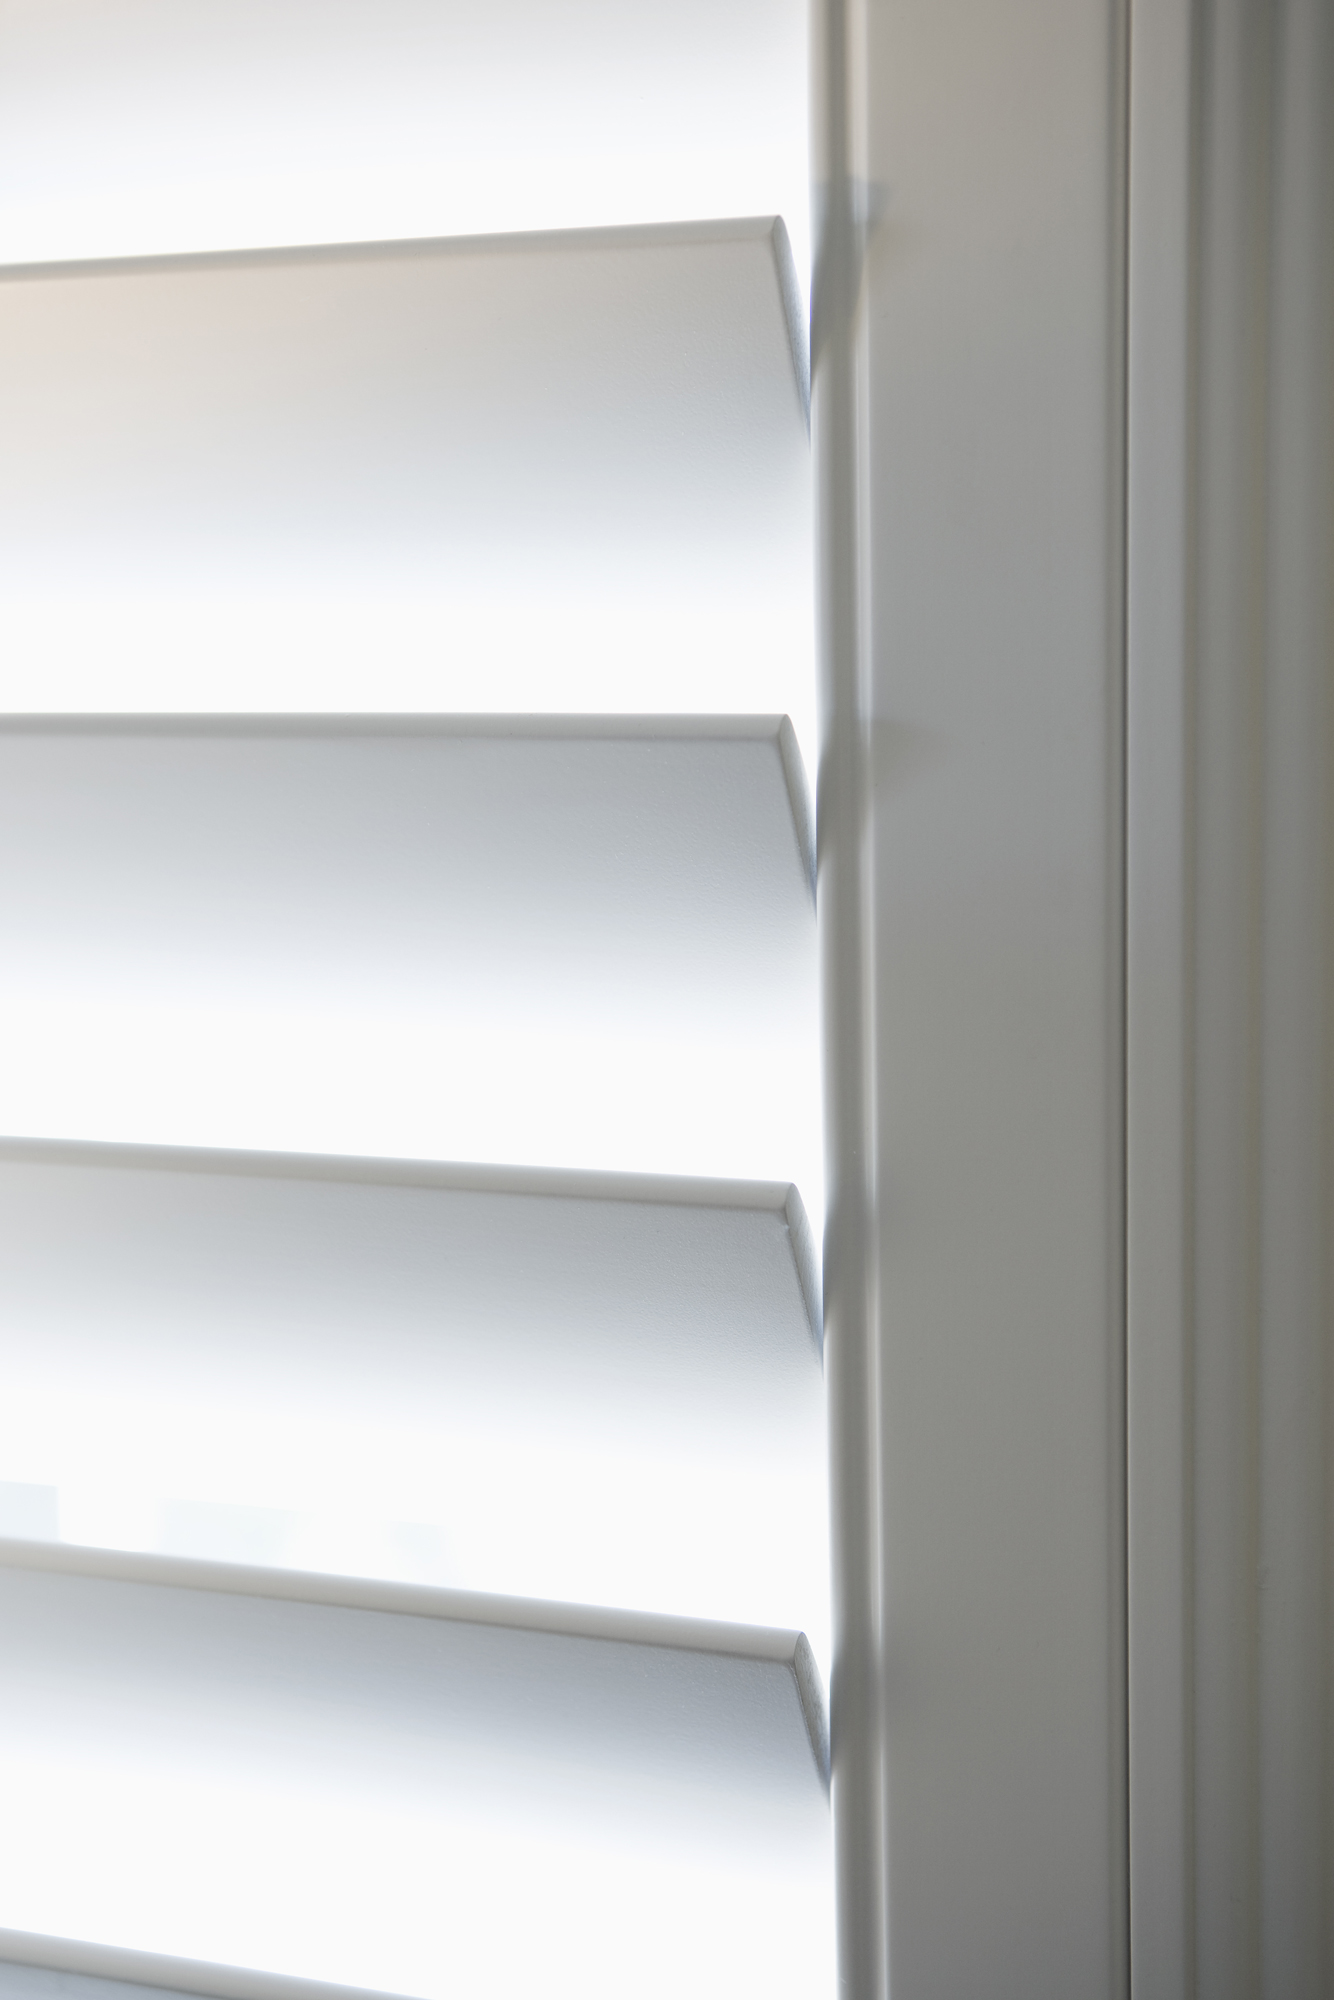 Clean Blinds and Pleated Shades